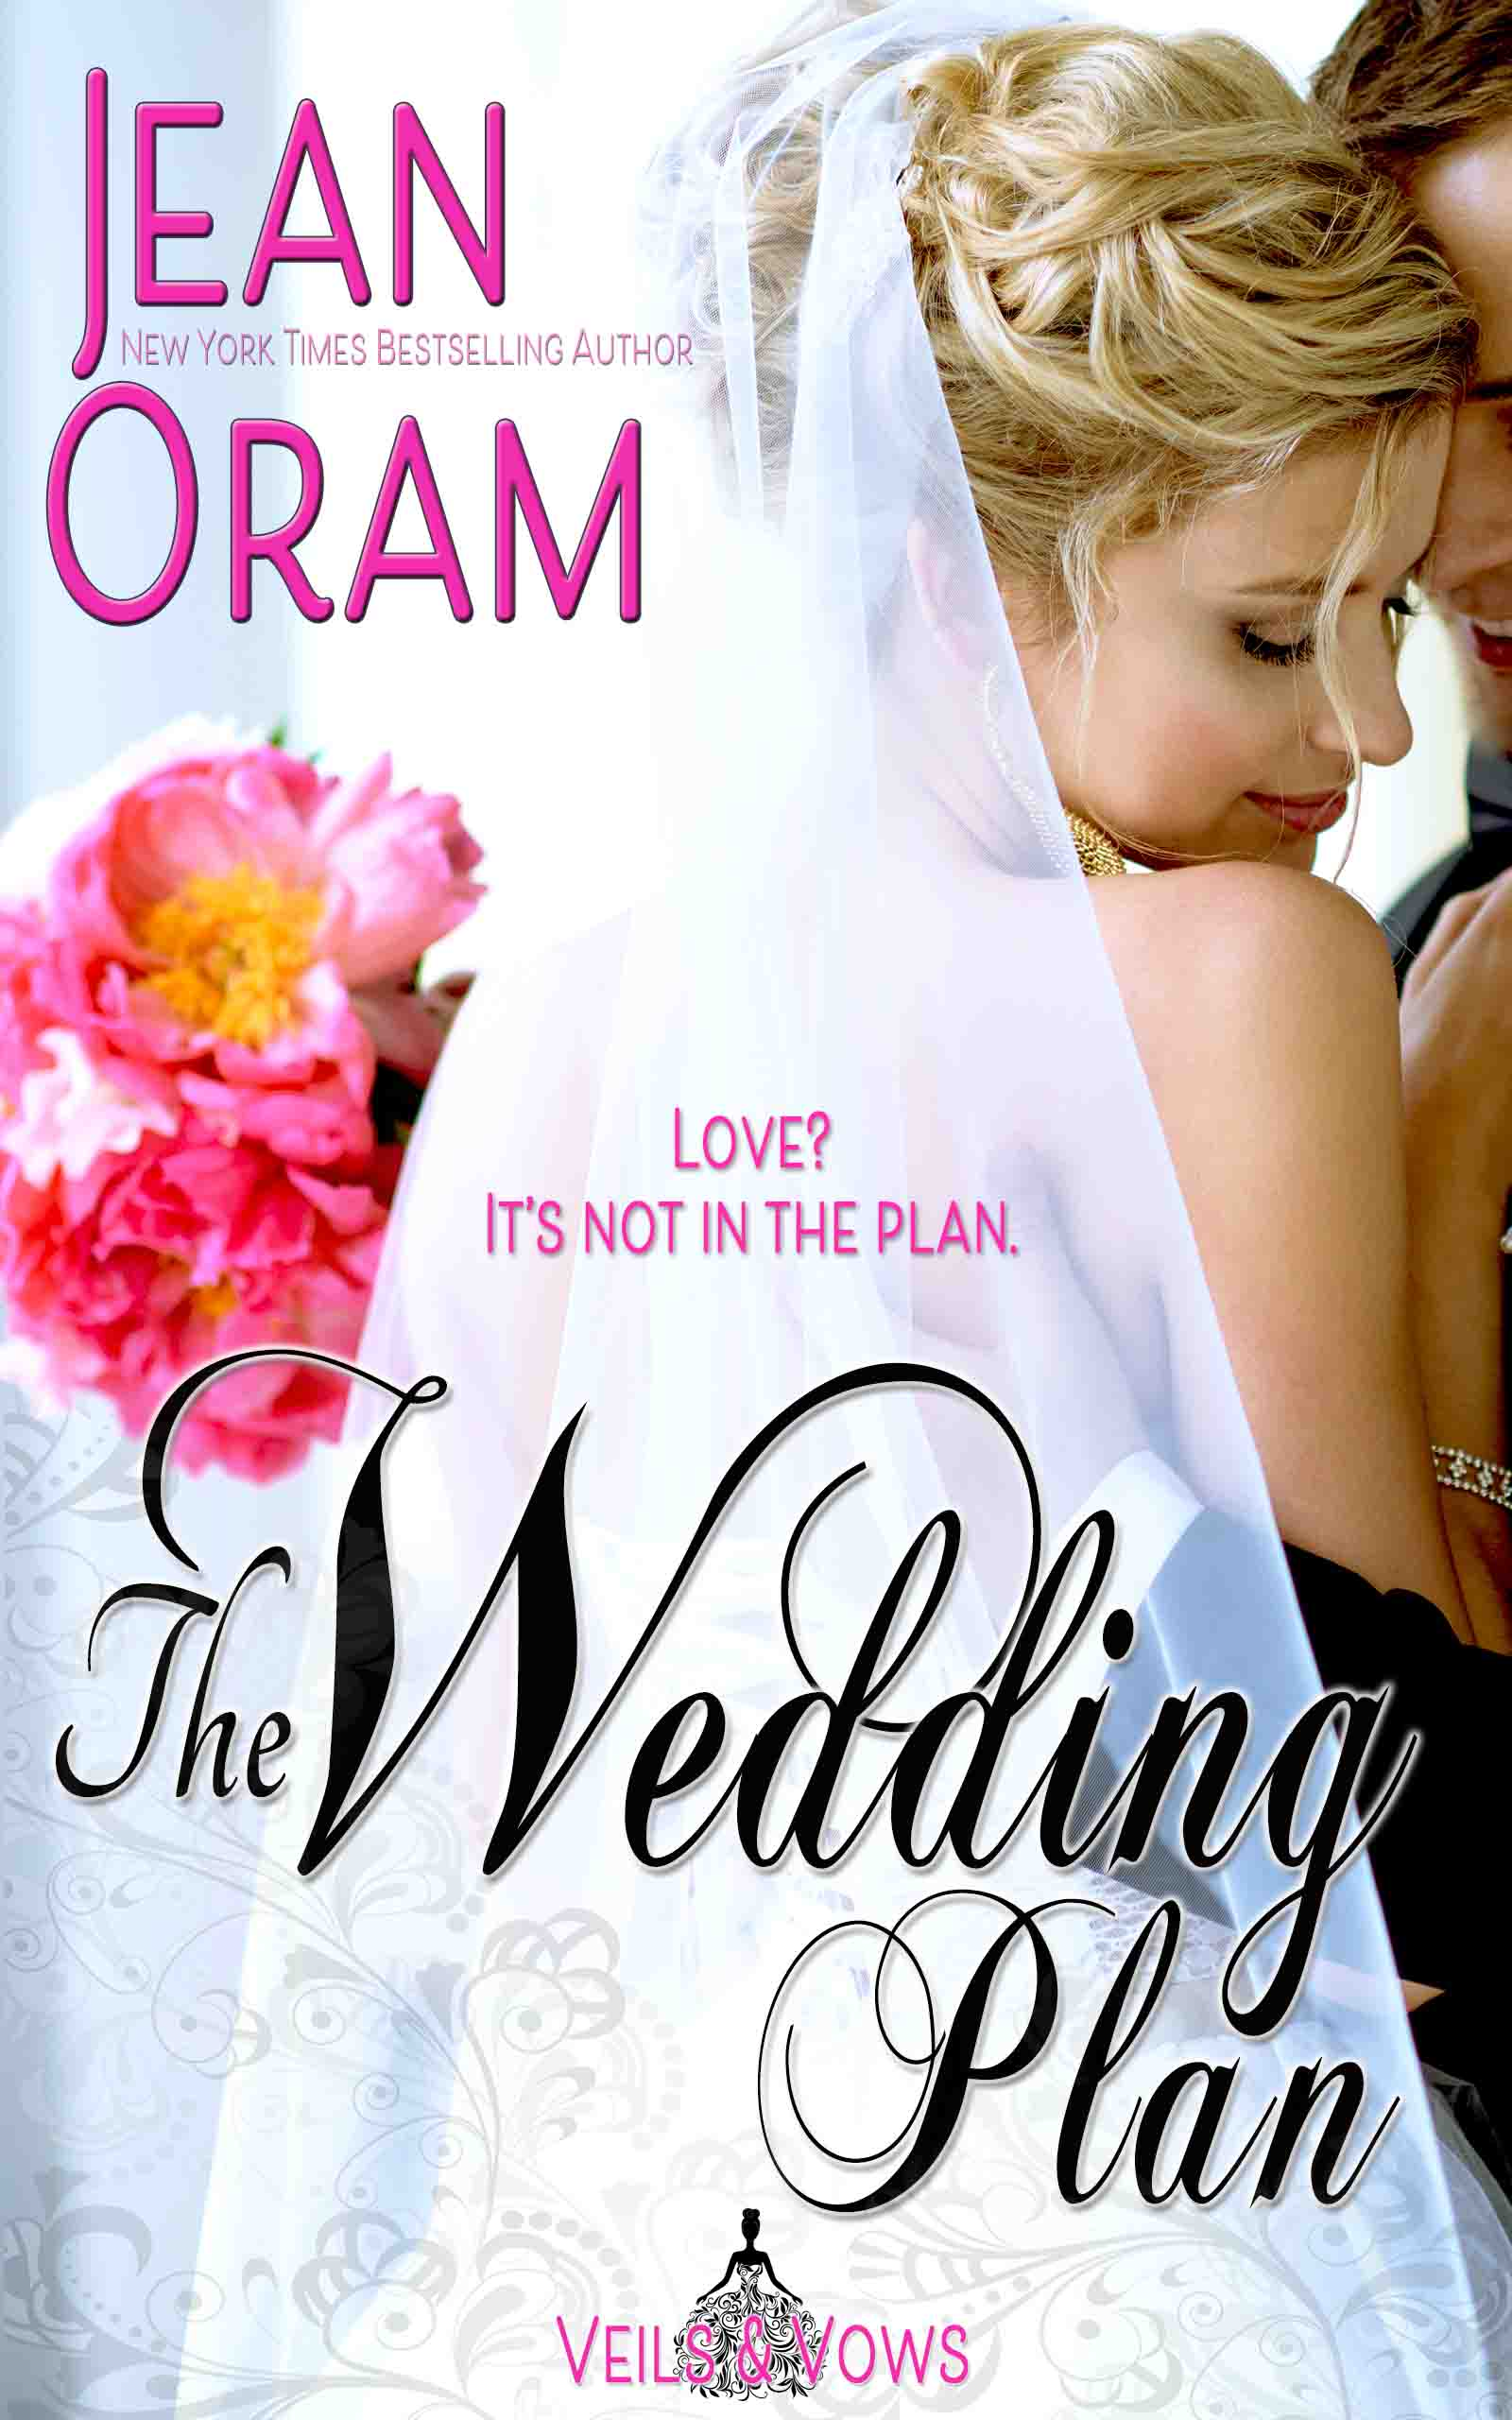 The Wedding Plan (Veils and Vows) by Jean Oram, marriage of convenience romance